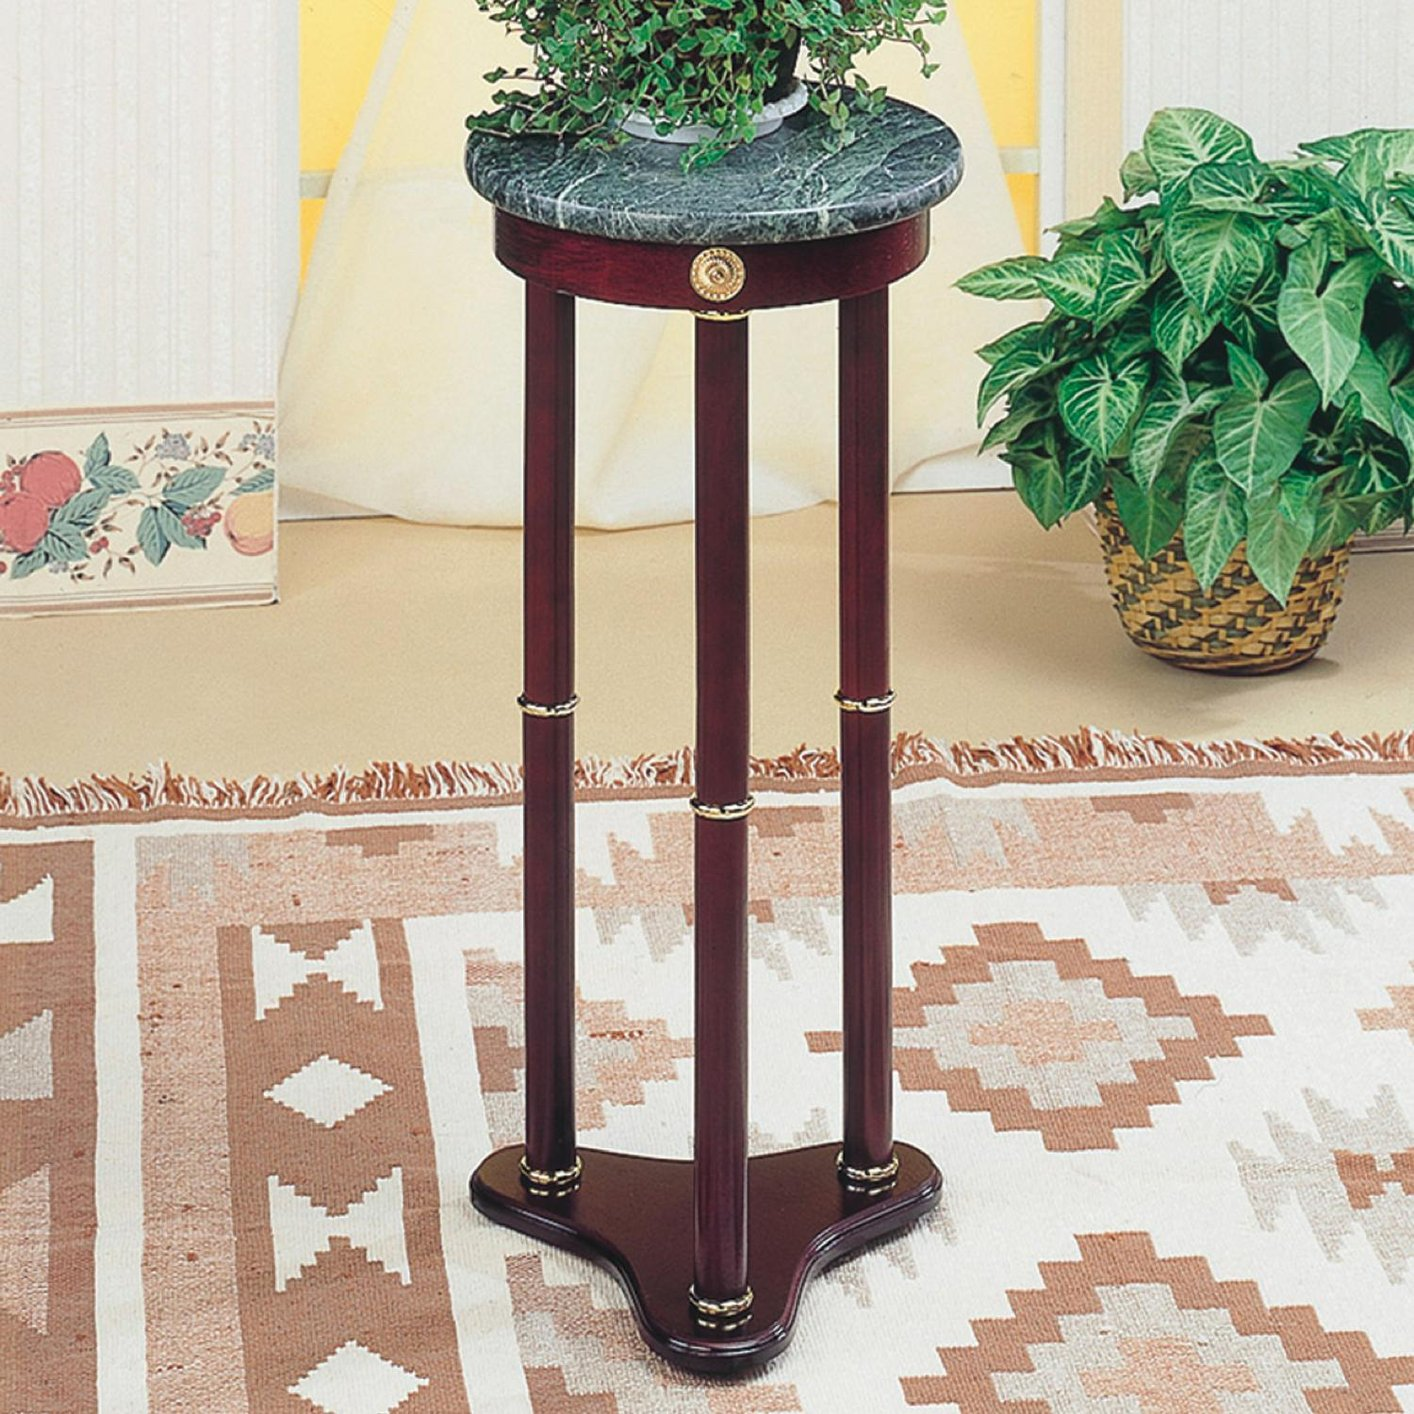 green wood accent table steal sofa furniture los angeles brown marble metal legs solid corner concrete and top tiffany style lamp shades promotions drum throne height unusual